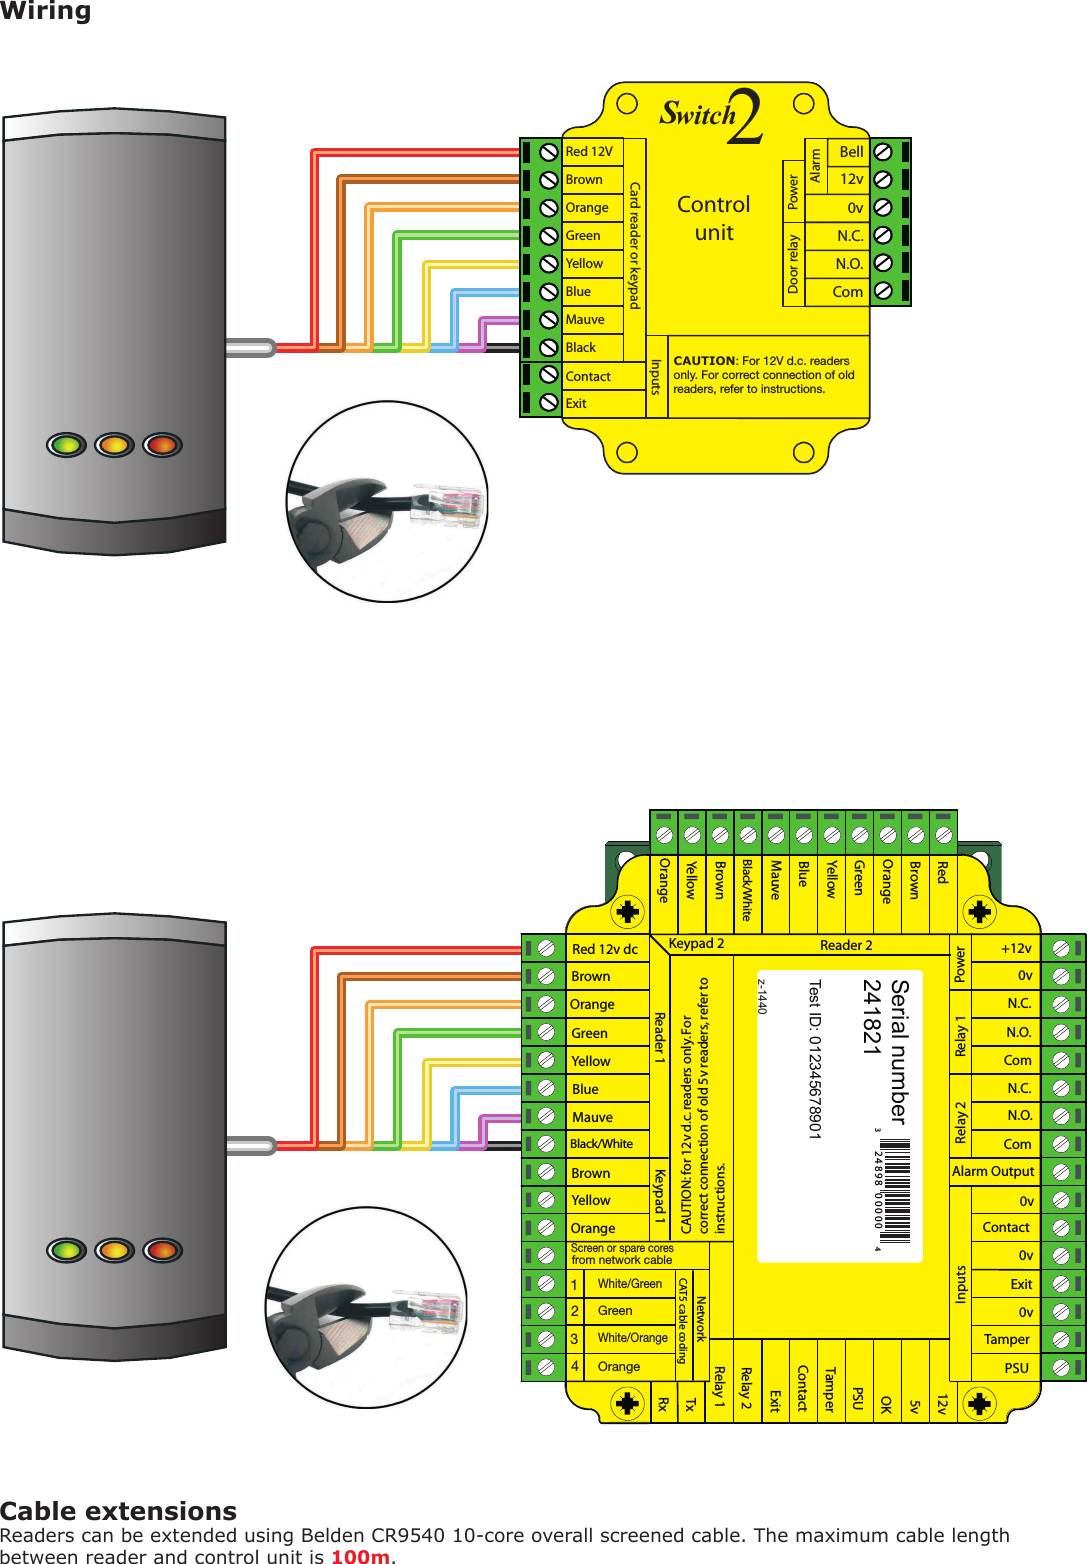 paxton switch 2 user manual